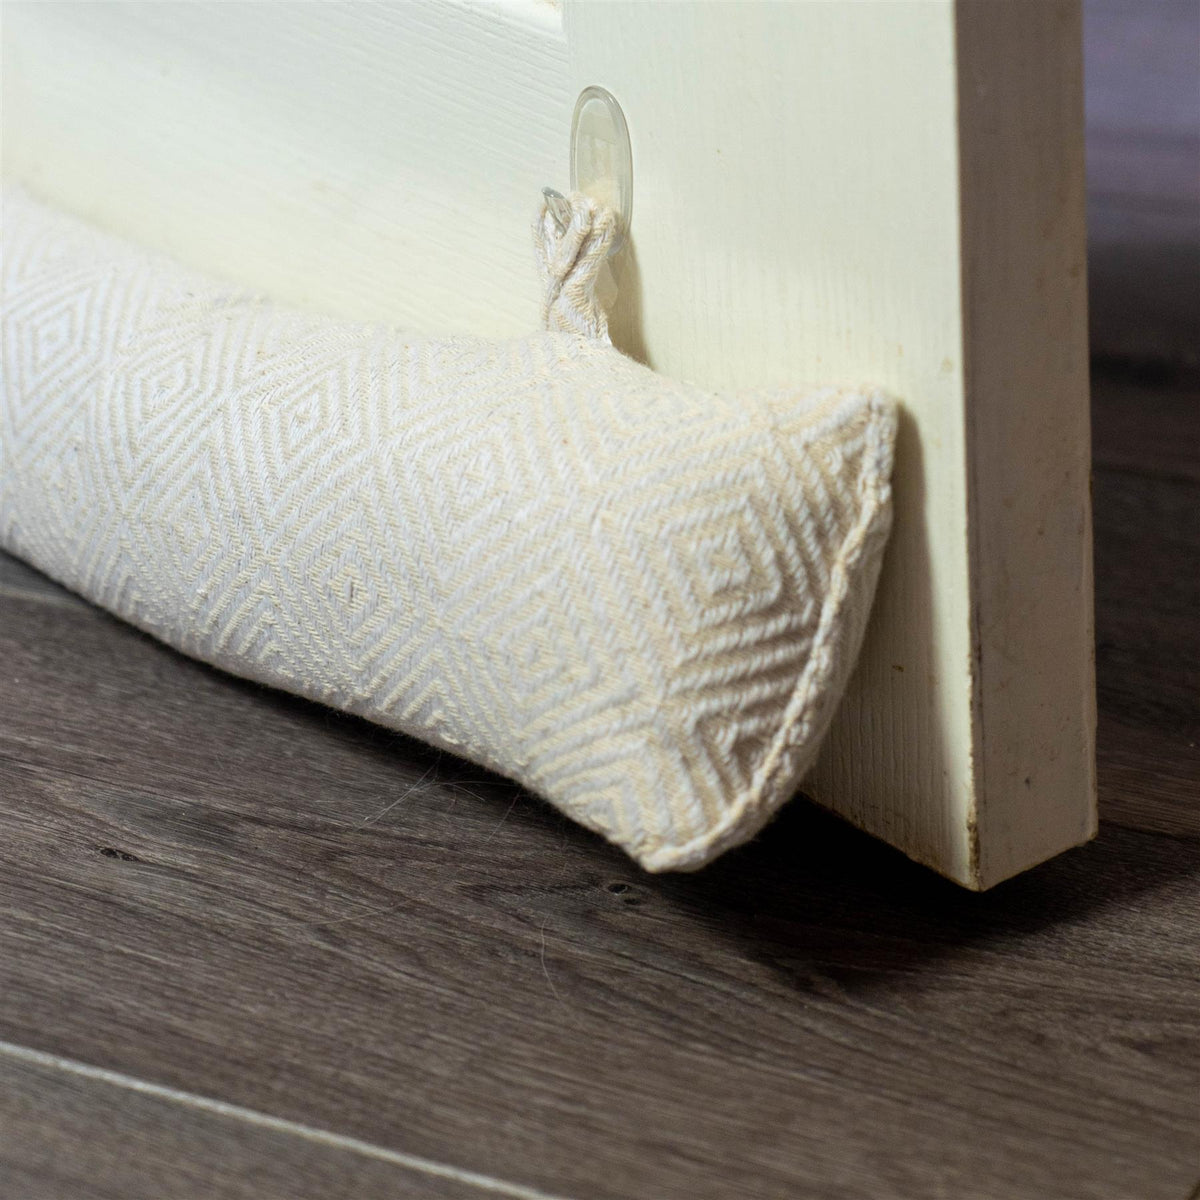 Nicola Spring Decorative Draught Excluder Natural 80cm Interior Door Lifestyle with Matching Door Stop